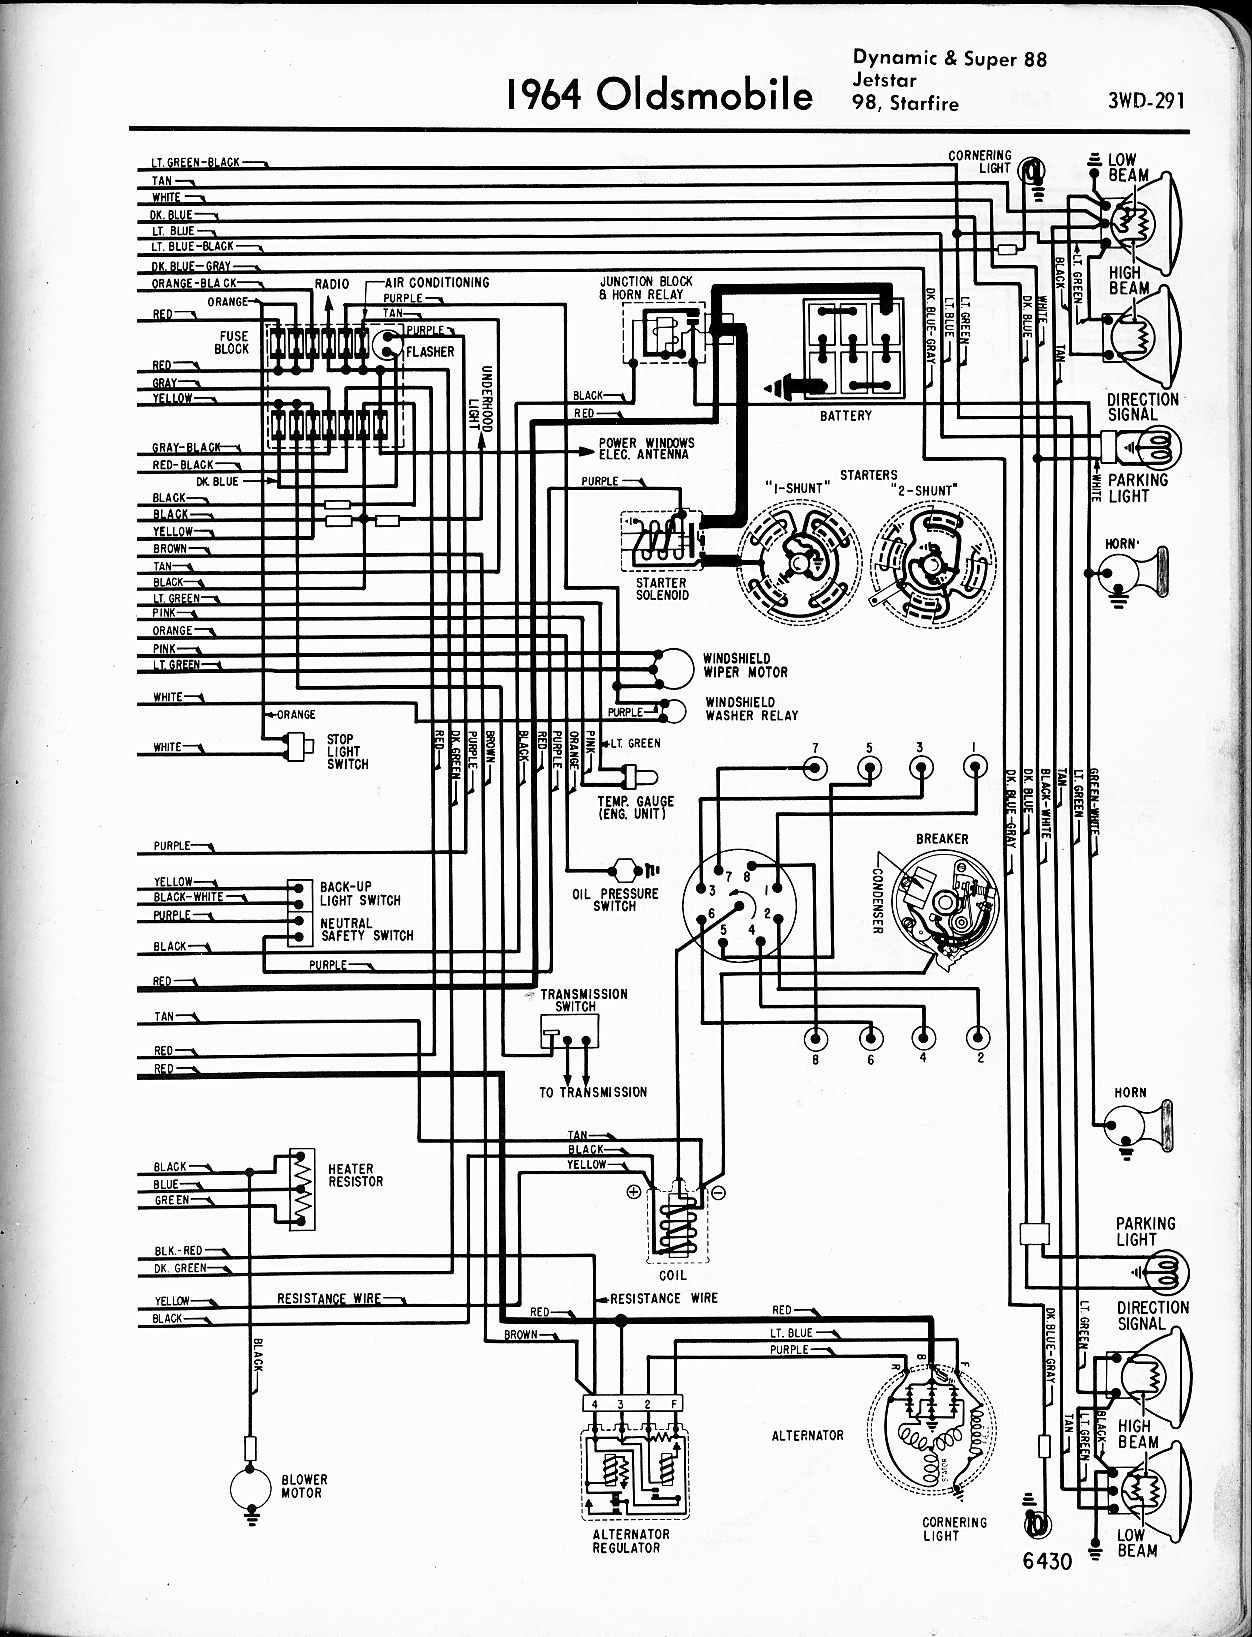 MWire5765 291 oldsmobile wiring diagrams the old car manual project  at crackthecode.co